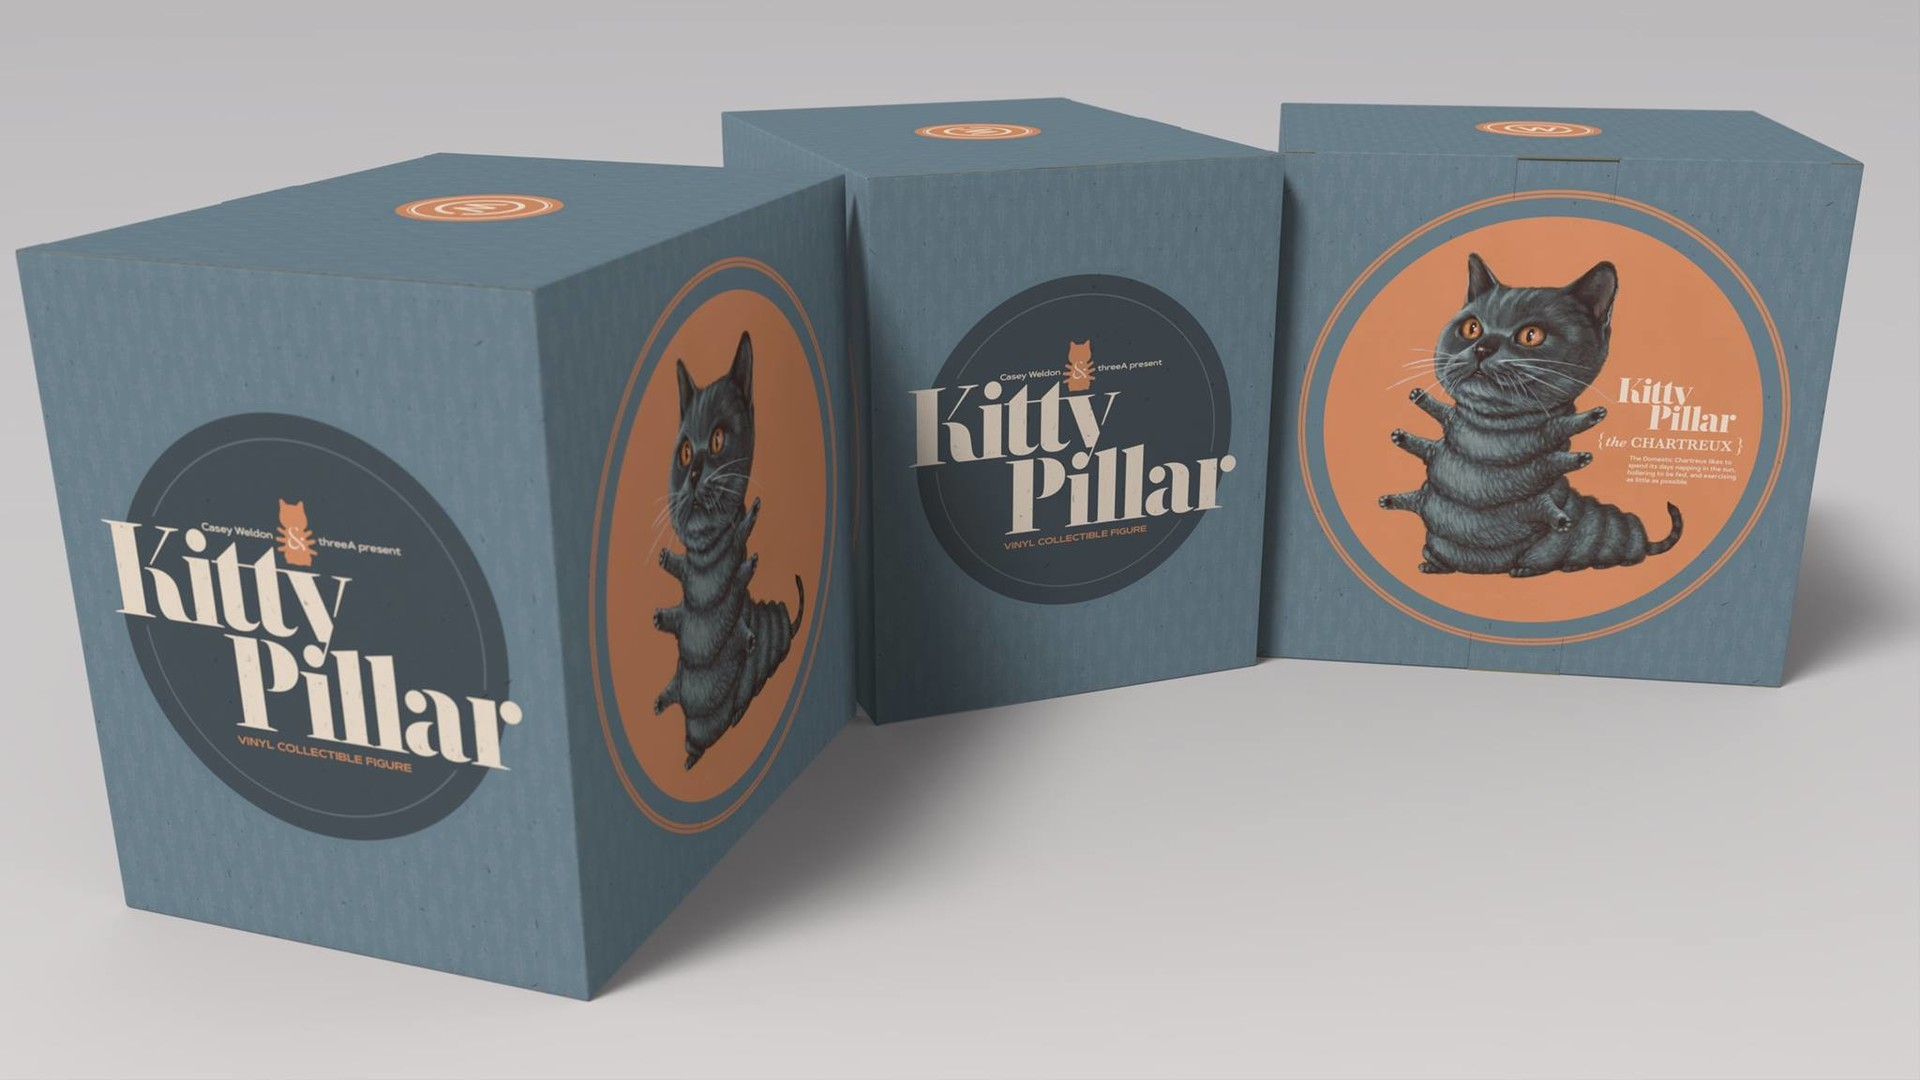 Killer Box design by Brent Ashe